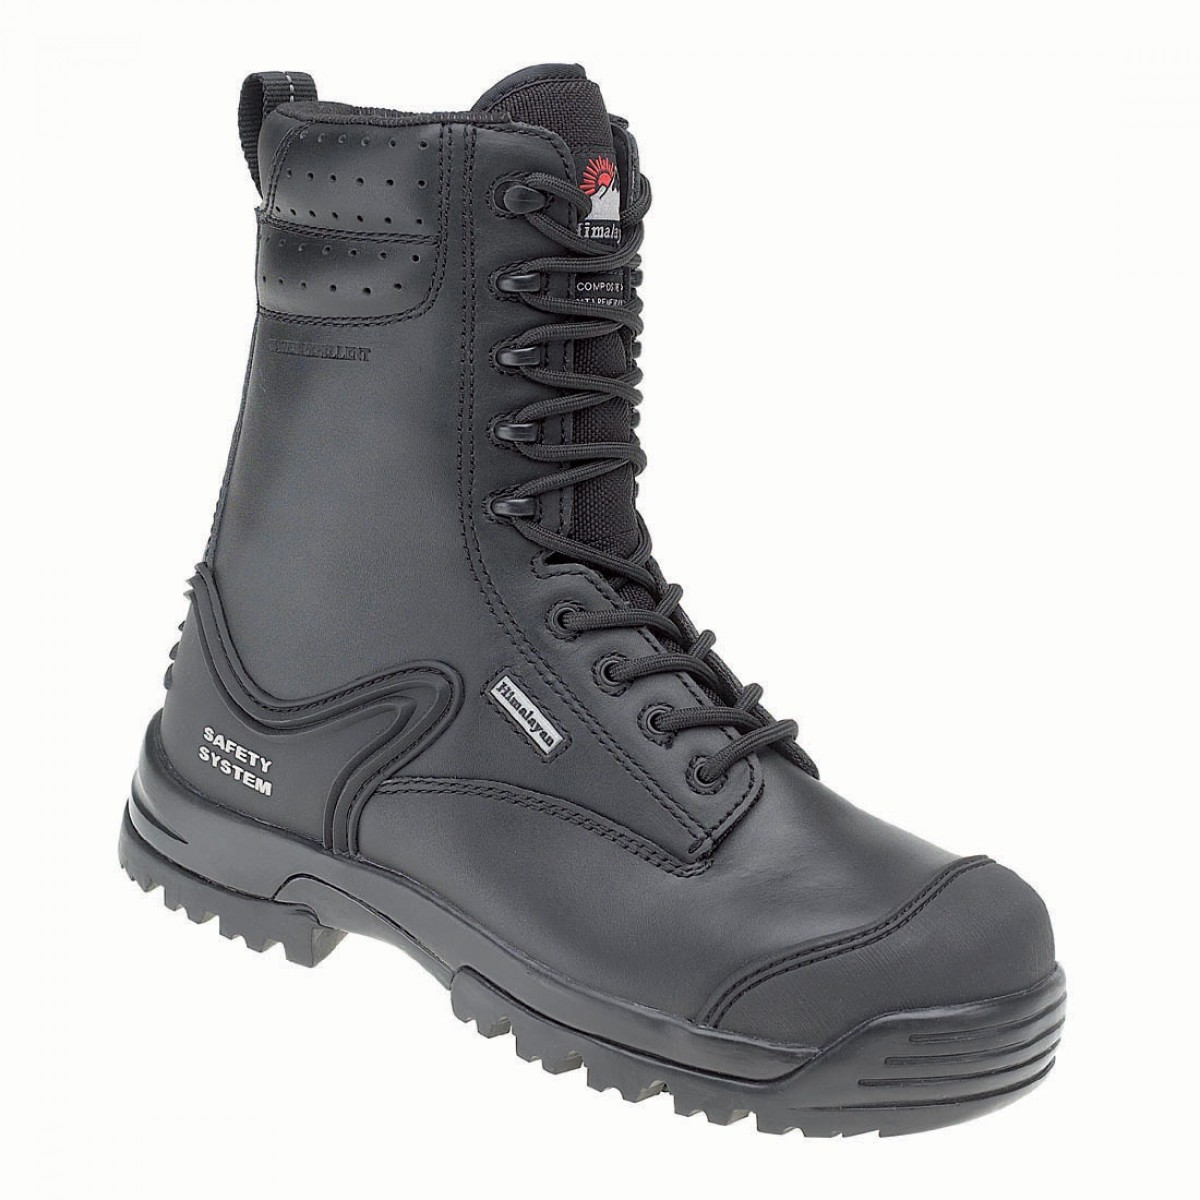 d163bff2829 Himalayan 5204 Gravity Black Leather Side Zip Metal Free S3 Safety Boots